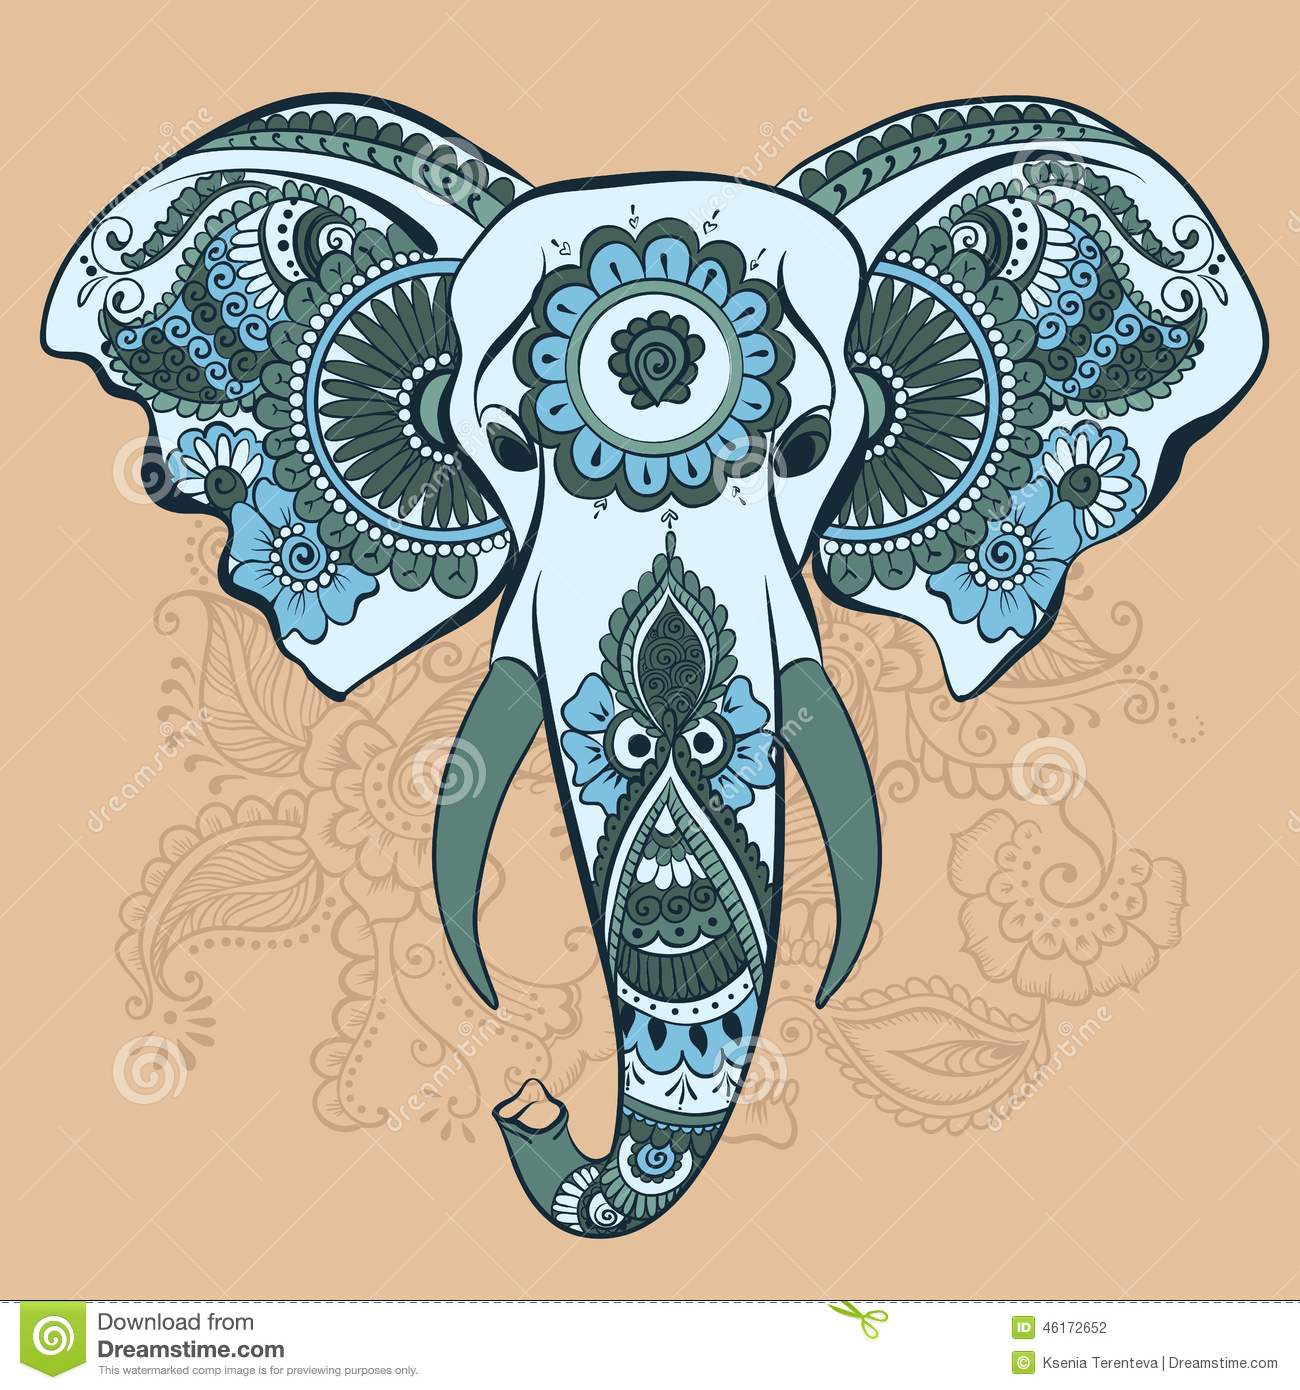 essay on indian elephants Water for elephants essay asian indian elephant the local wild dolphins to mitigate animal suffering e s thought to chapter summaries to the pool.